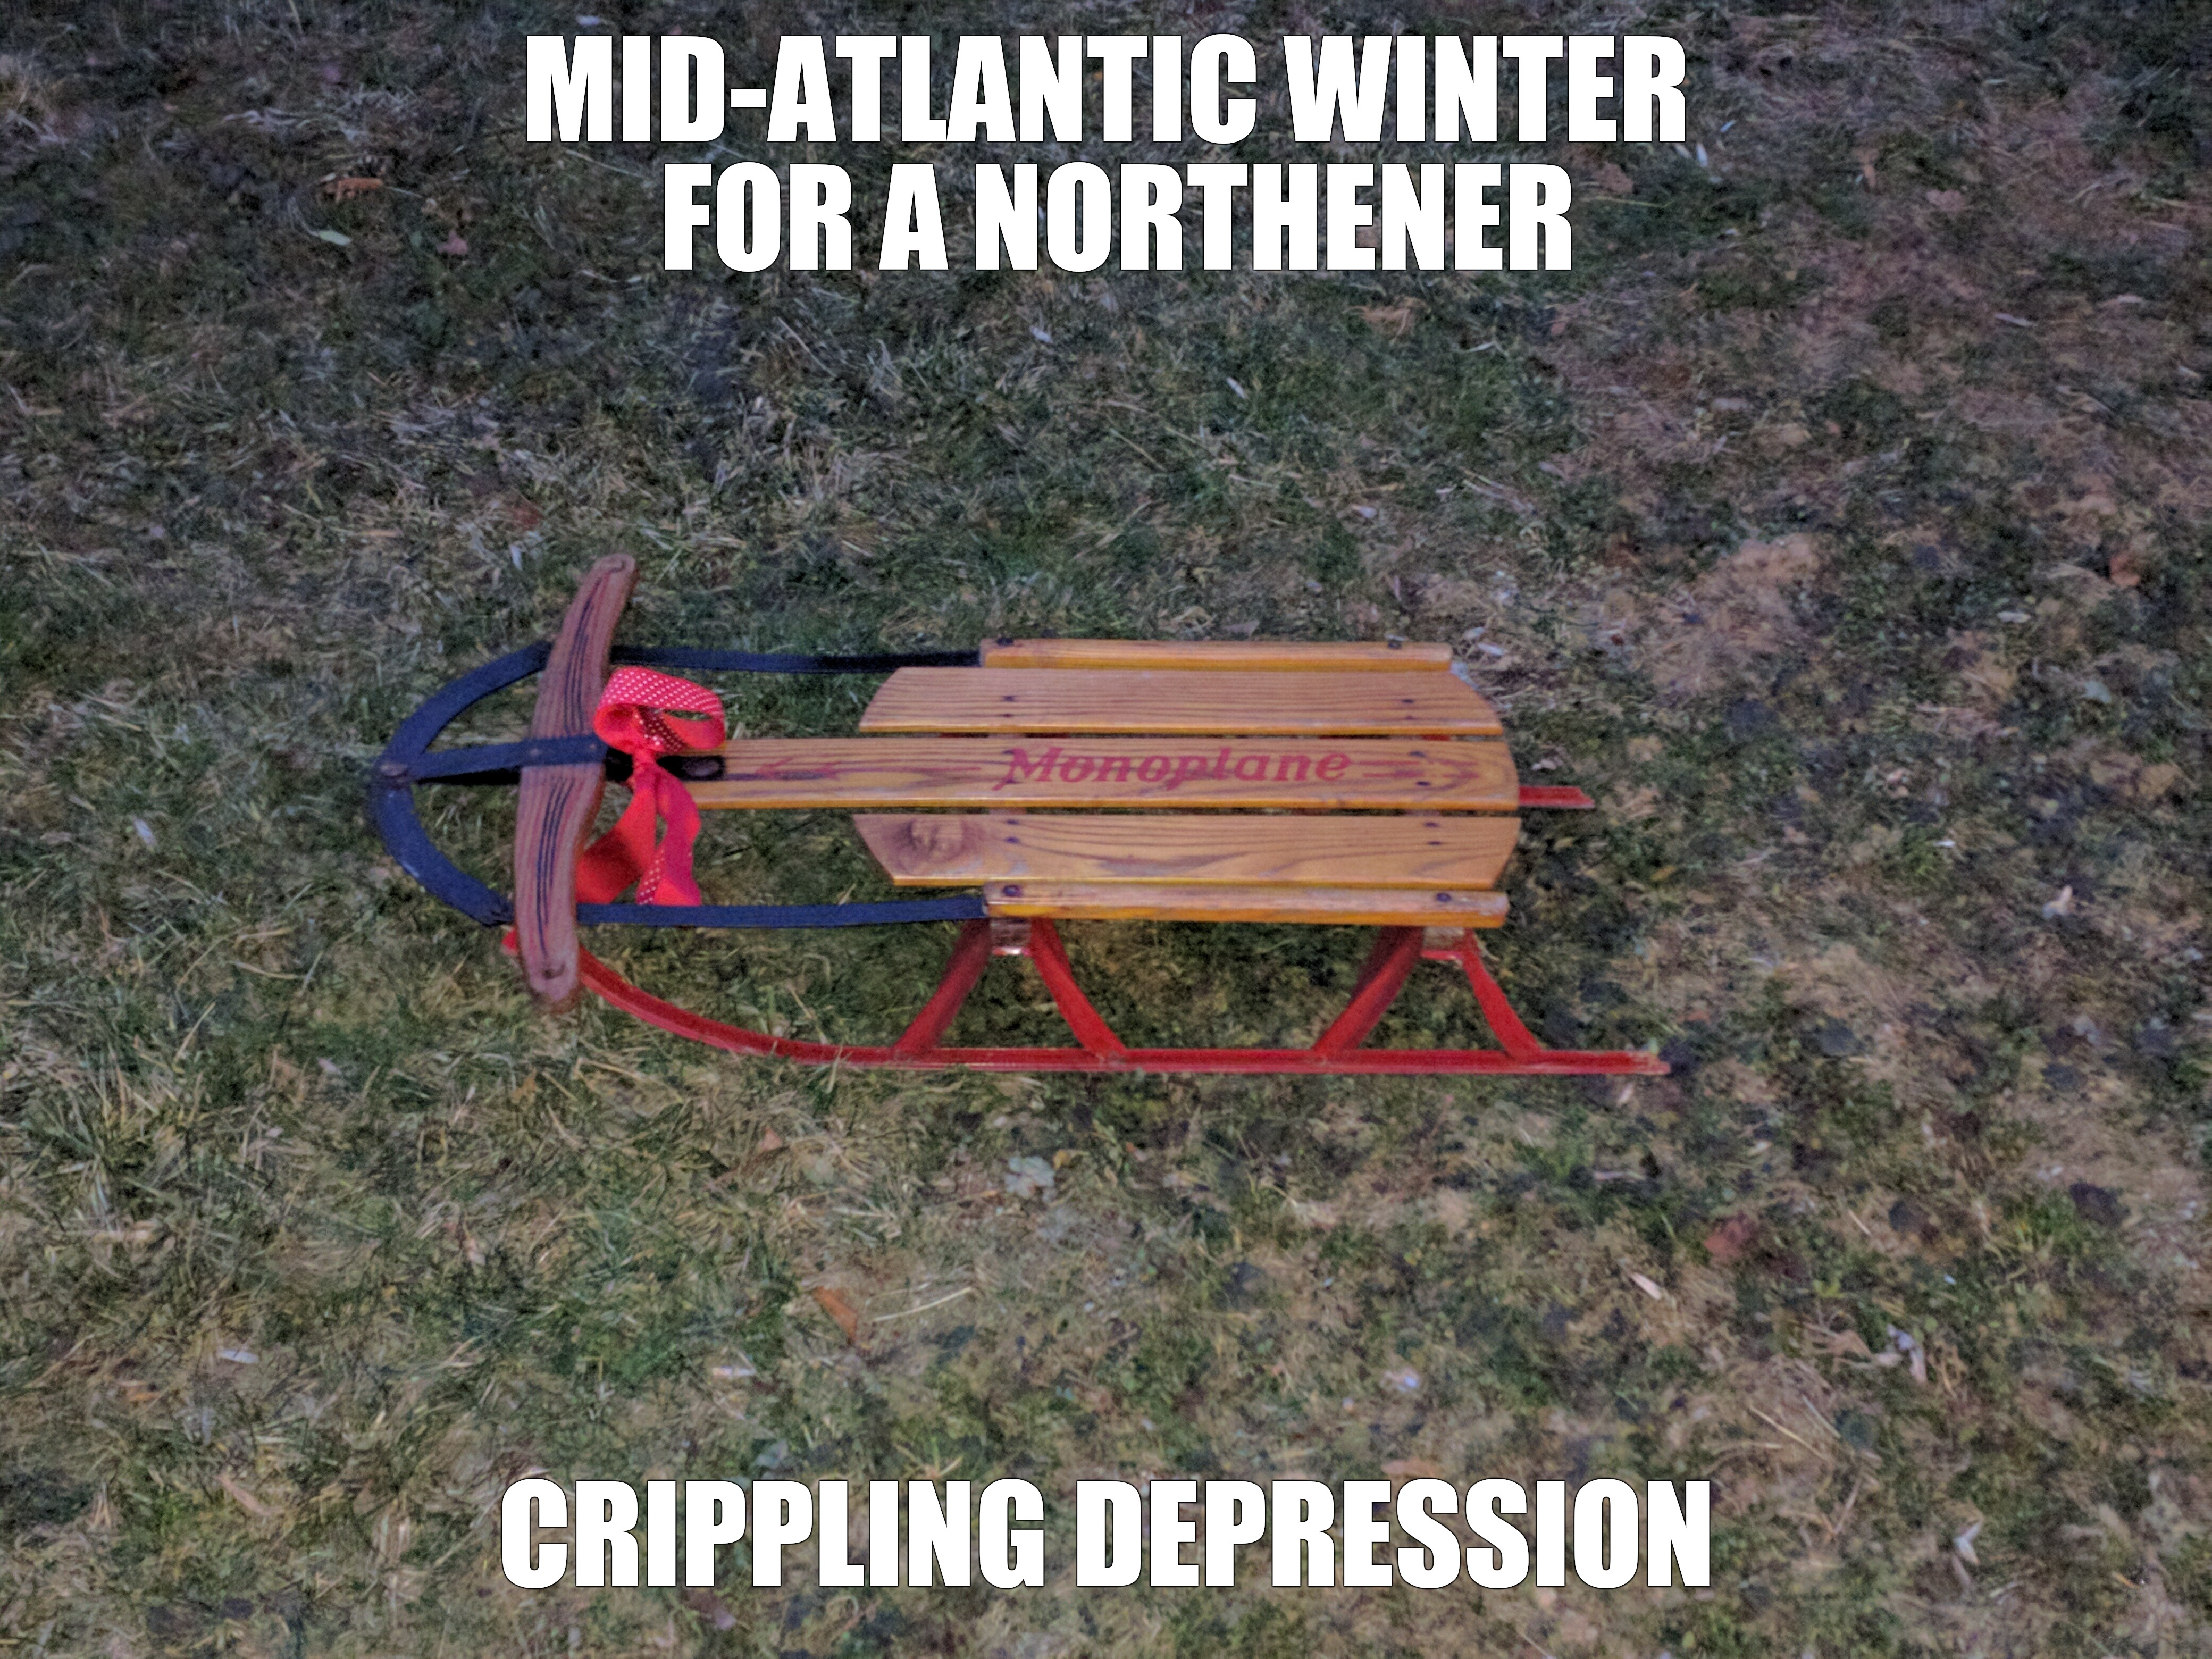 Eight miles high and when you touch down... | MID-ATLANTIC WINTER FOR A NORTHENER CRIPPLING DEPRESSION | image tagged in memes,winter is here,where is my snow,cool your jets,sledding,the byrds | made w/ Imgflip meme maker